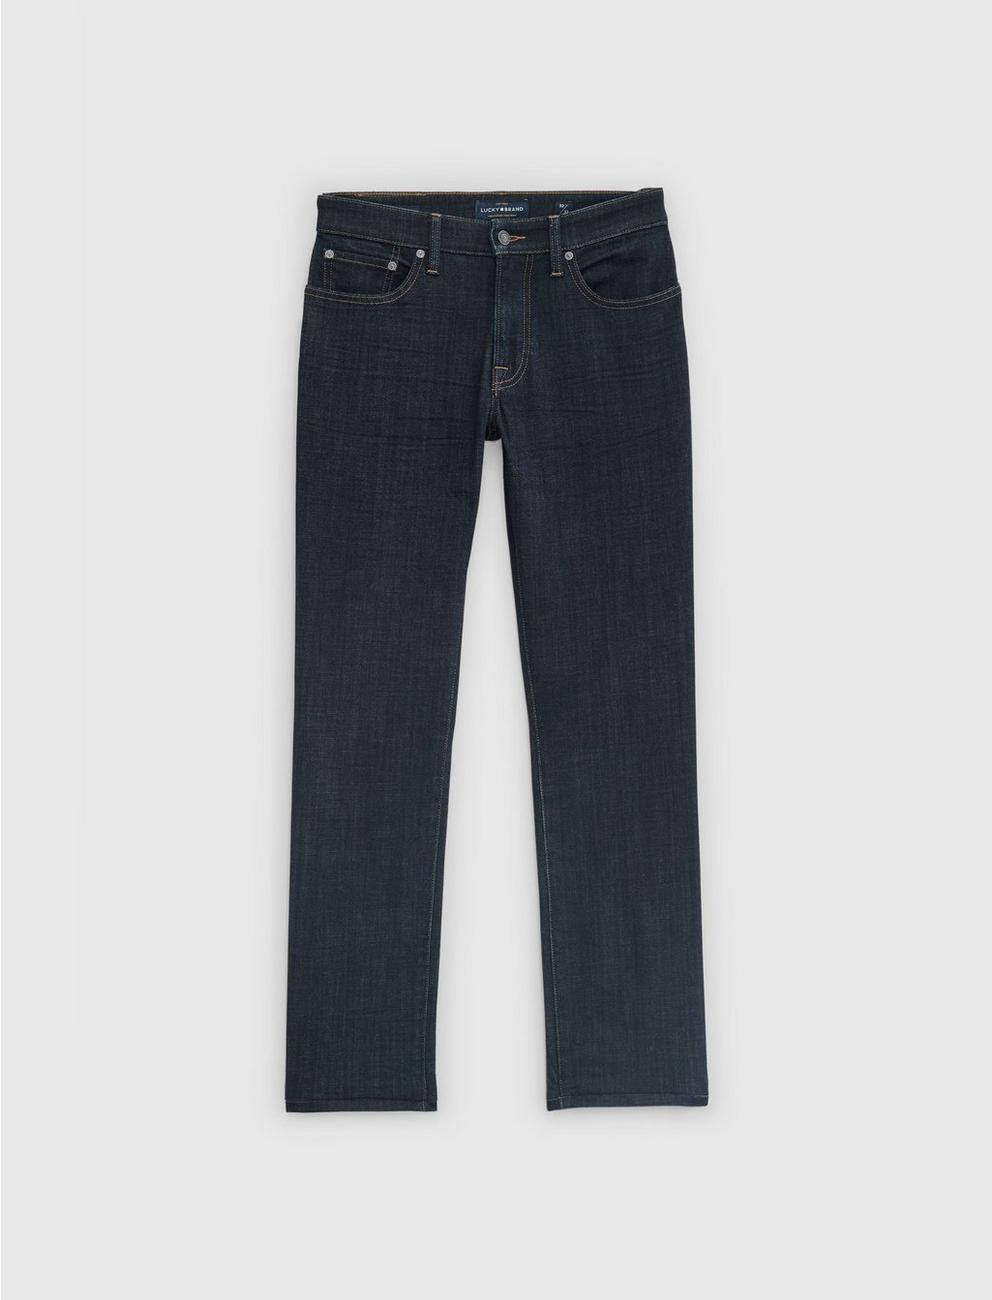 221 STRAIGHT COOLMAX ALL SEASON TECHNOLOGY JEAN, HULA